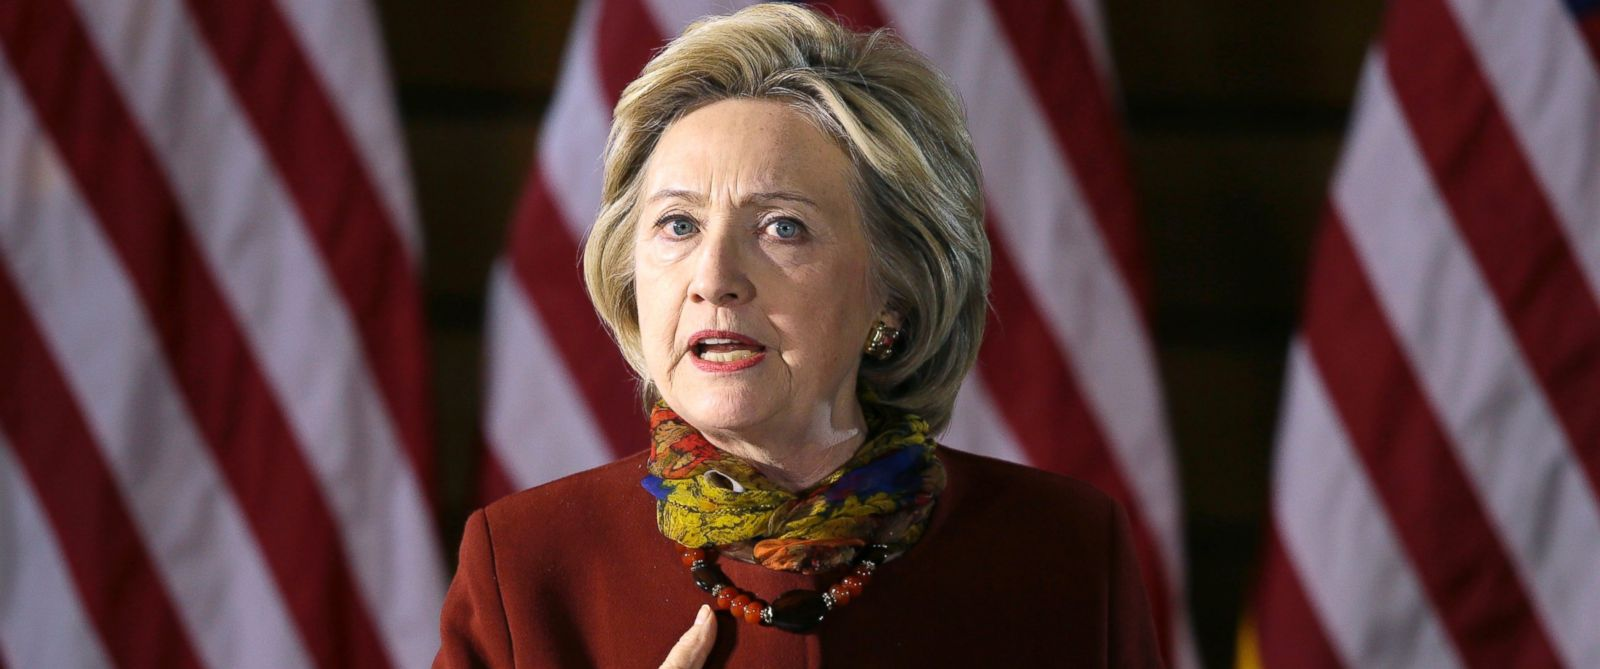 PHOTO: Democratic presidential candidate Hillary Clinton speaks about her counterterrorism strategy during a speech at the University of Minnesota, Dec. 15, 2015, in Minneapolis.